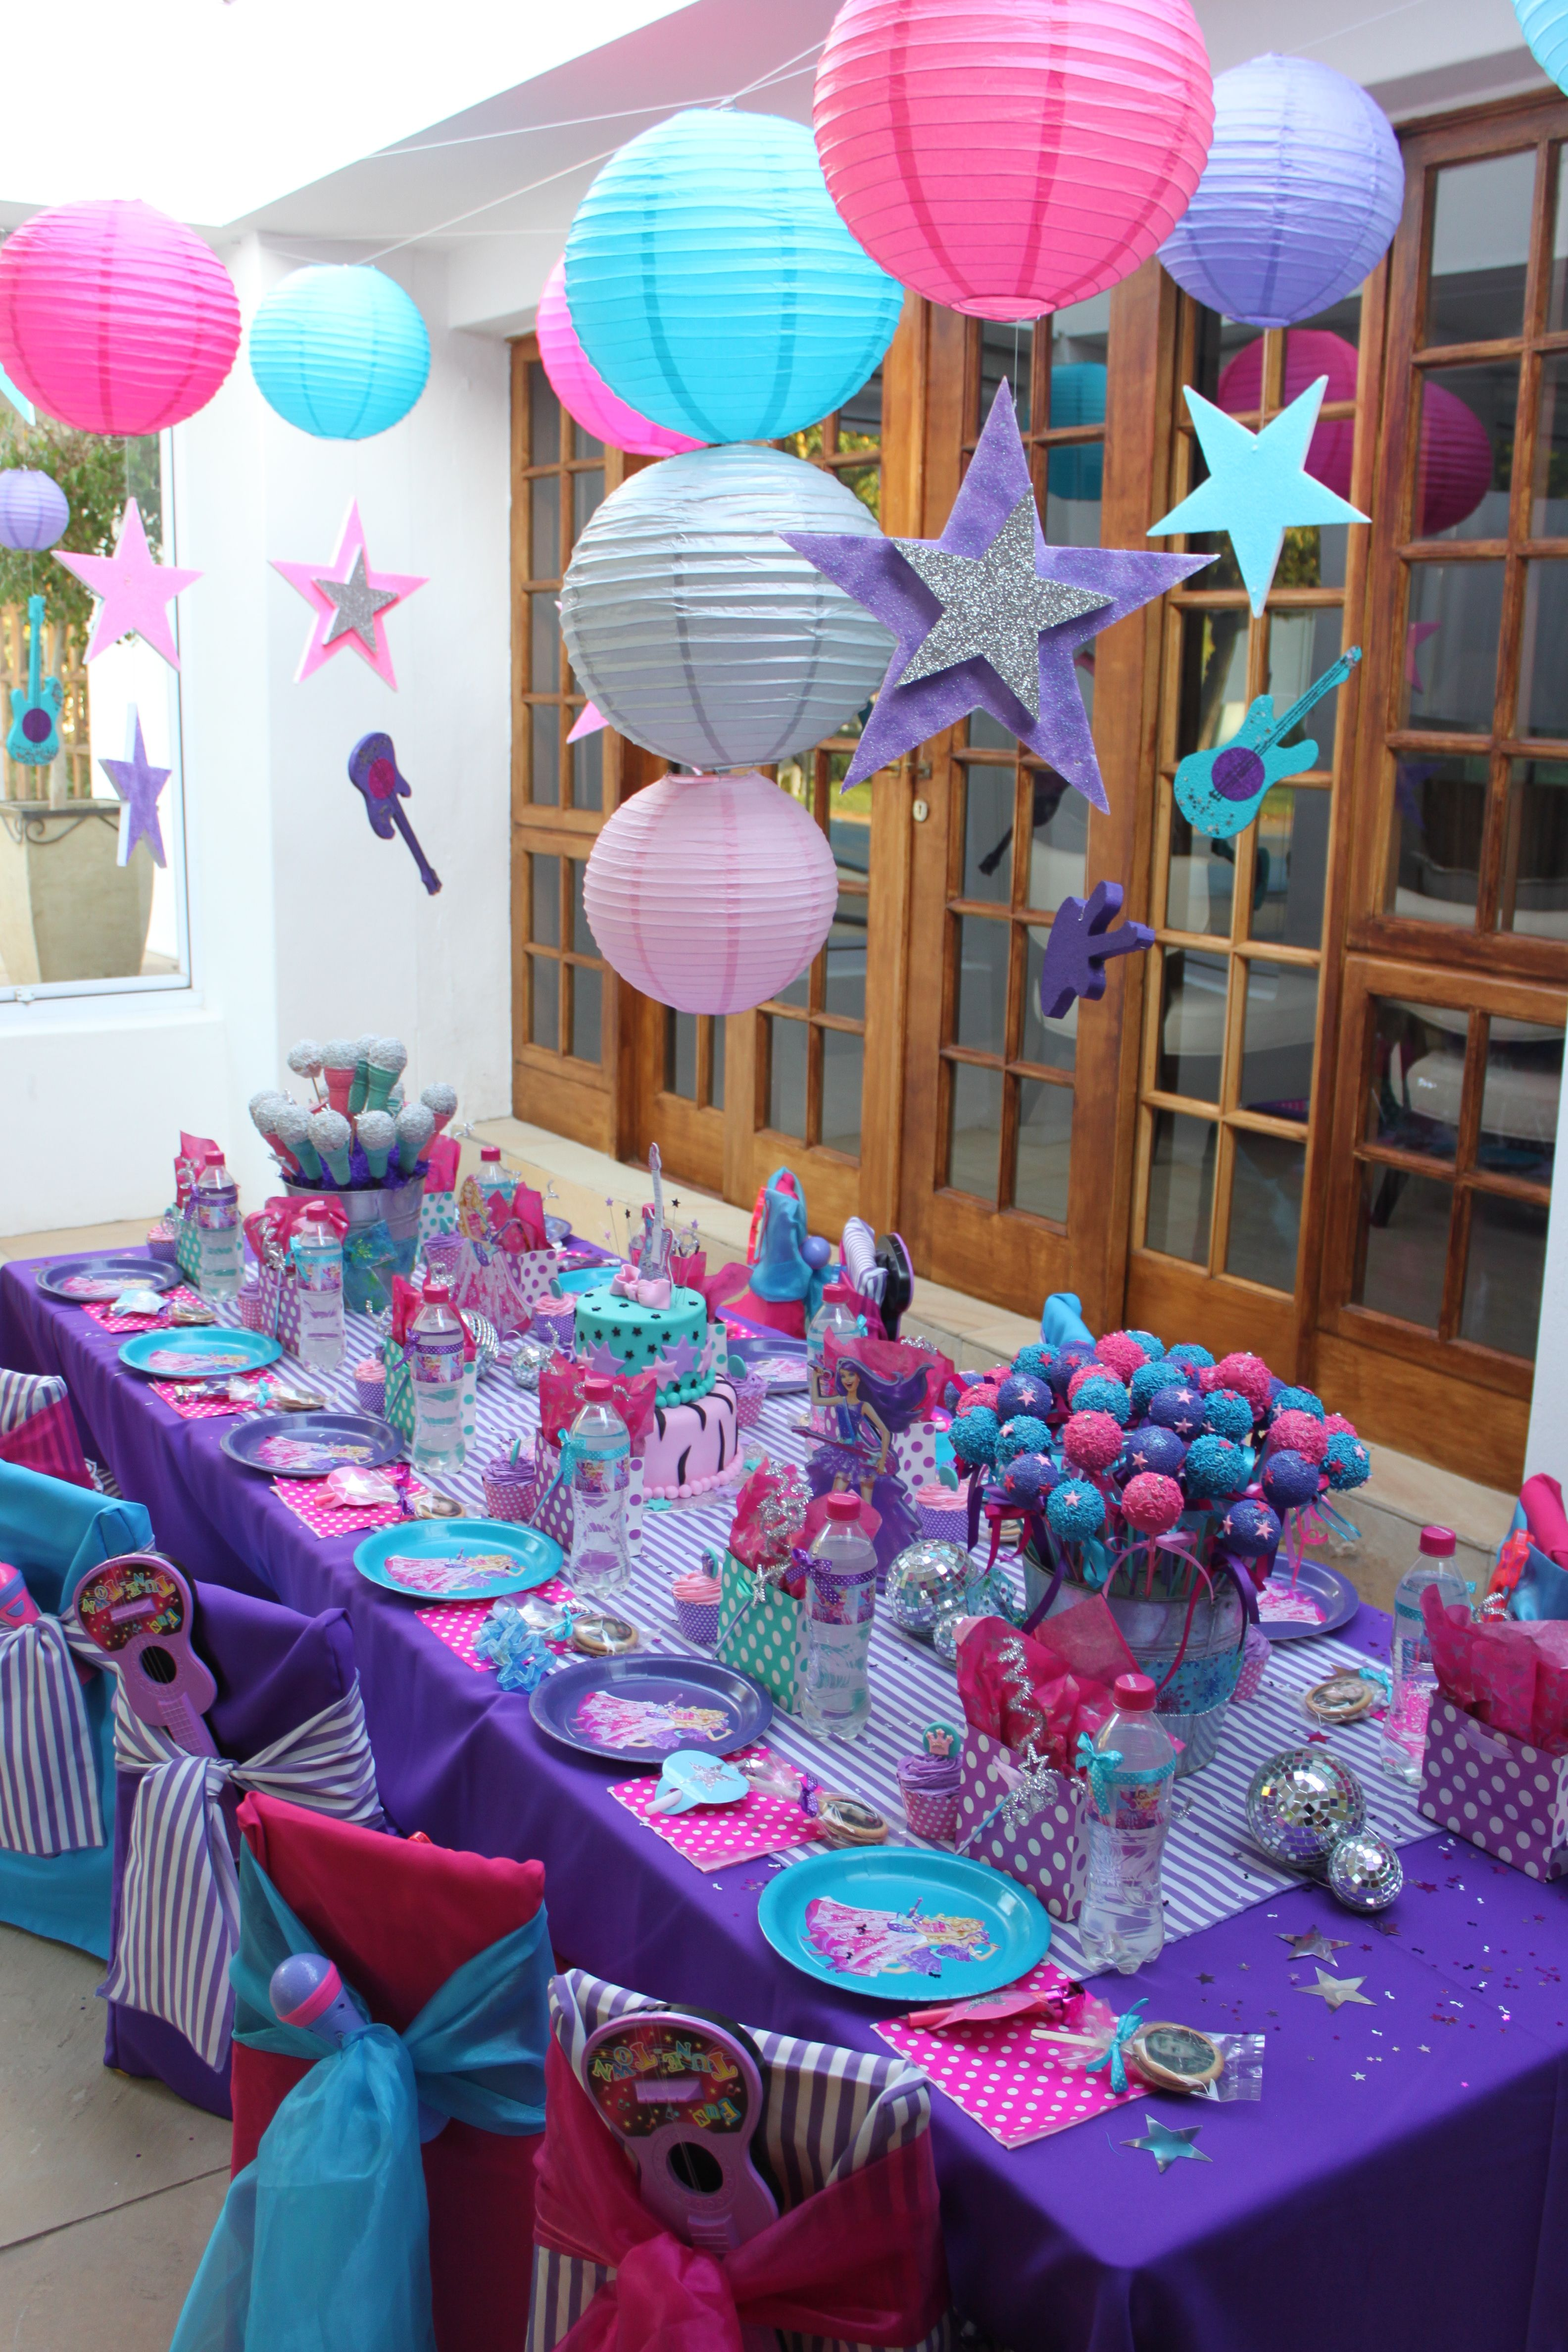 Cute Simple Decorations For A Party. Just Change The